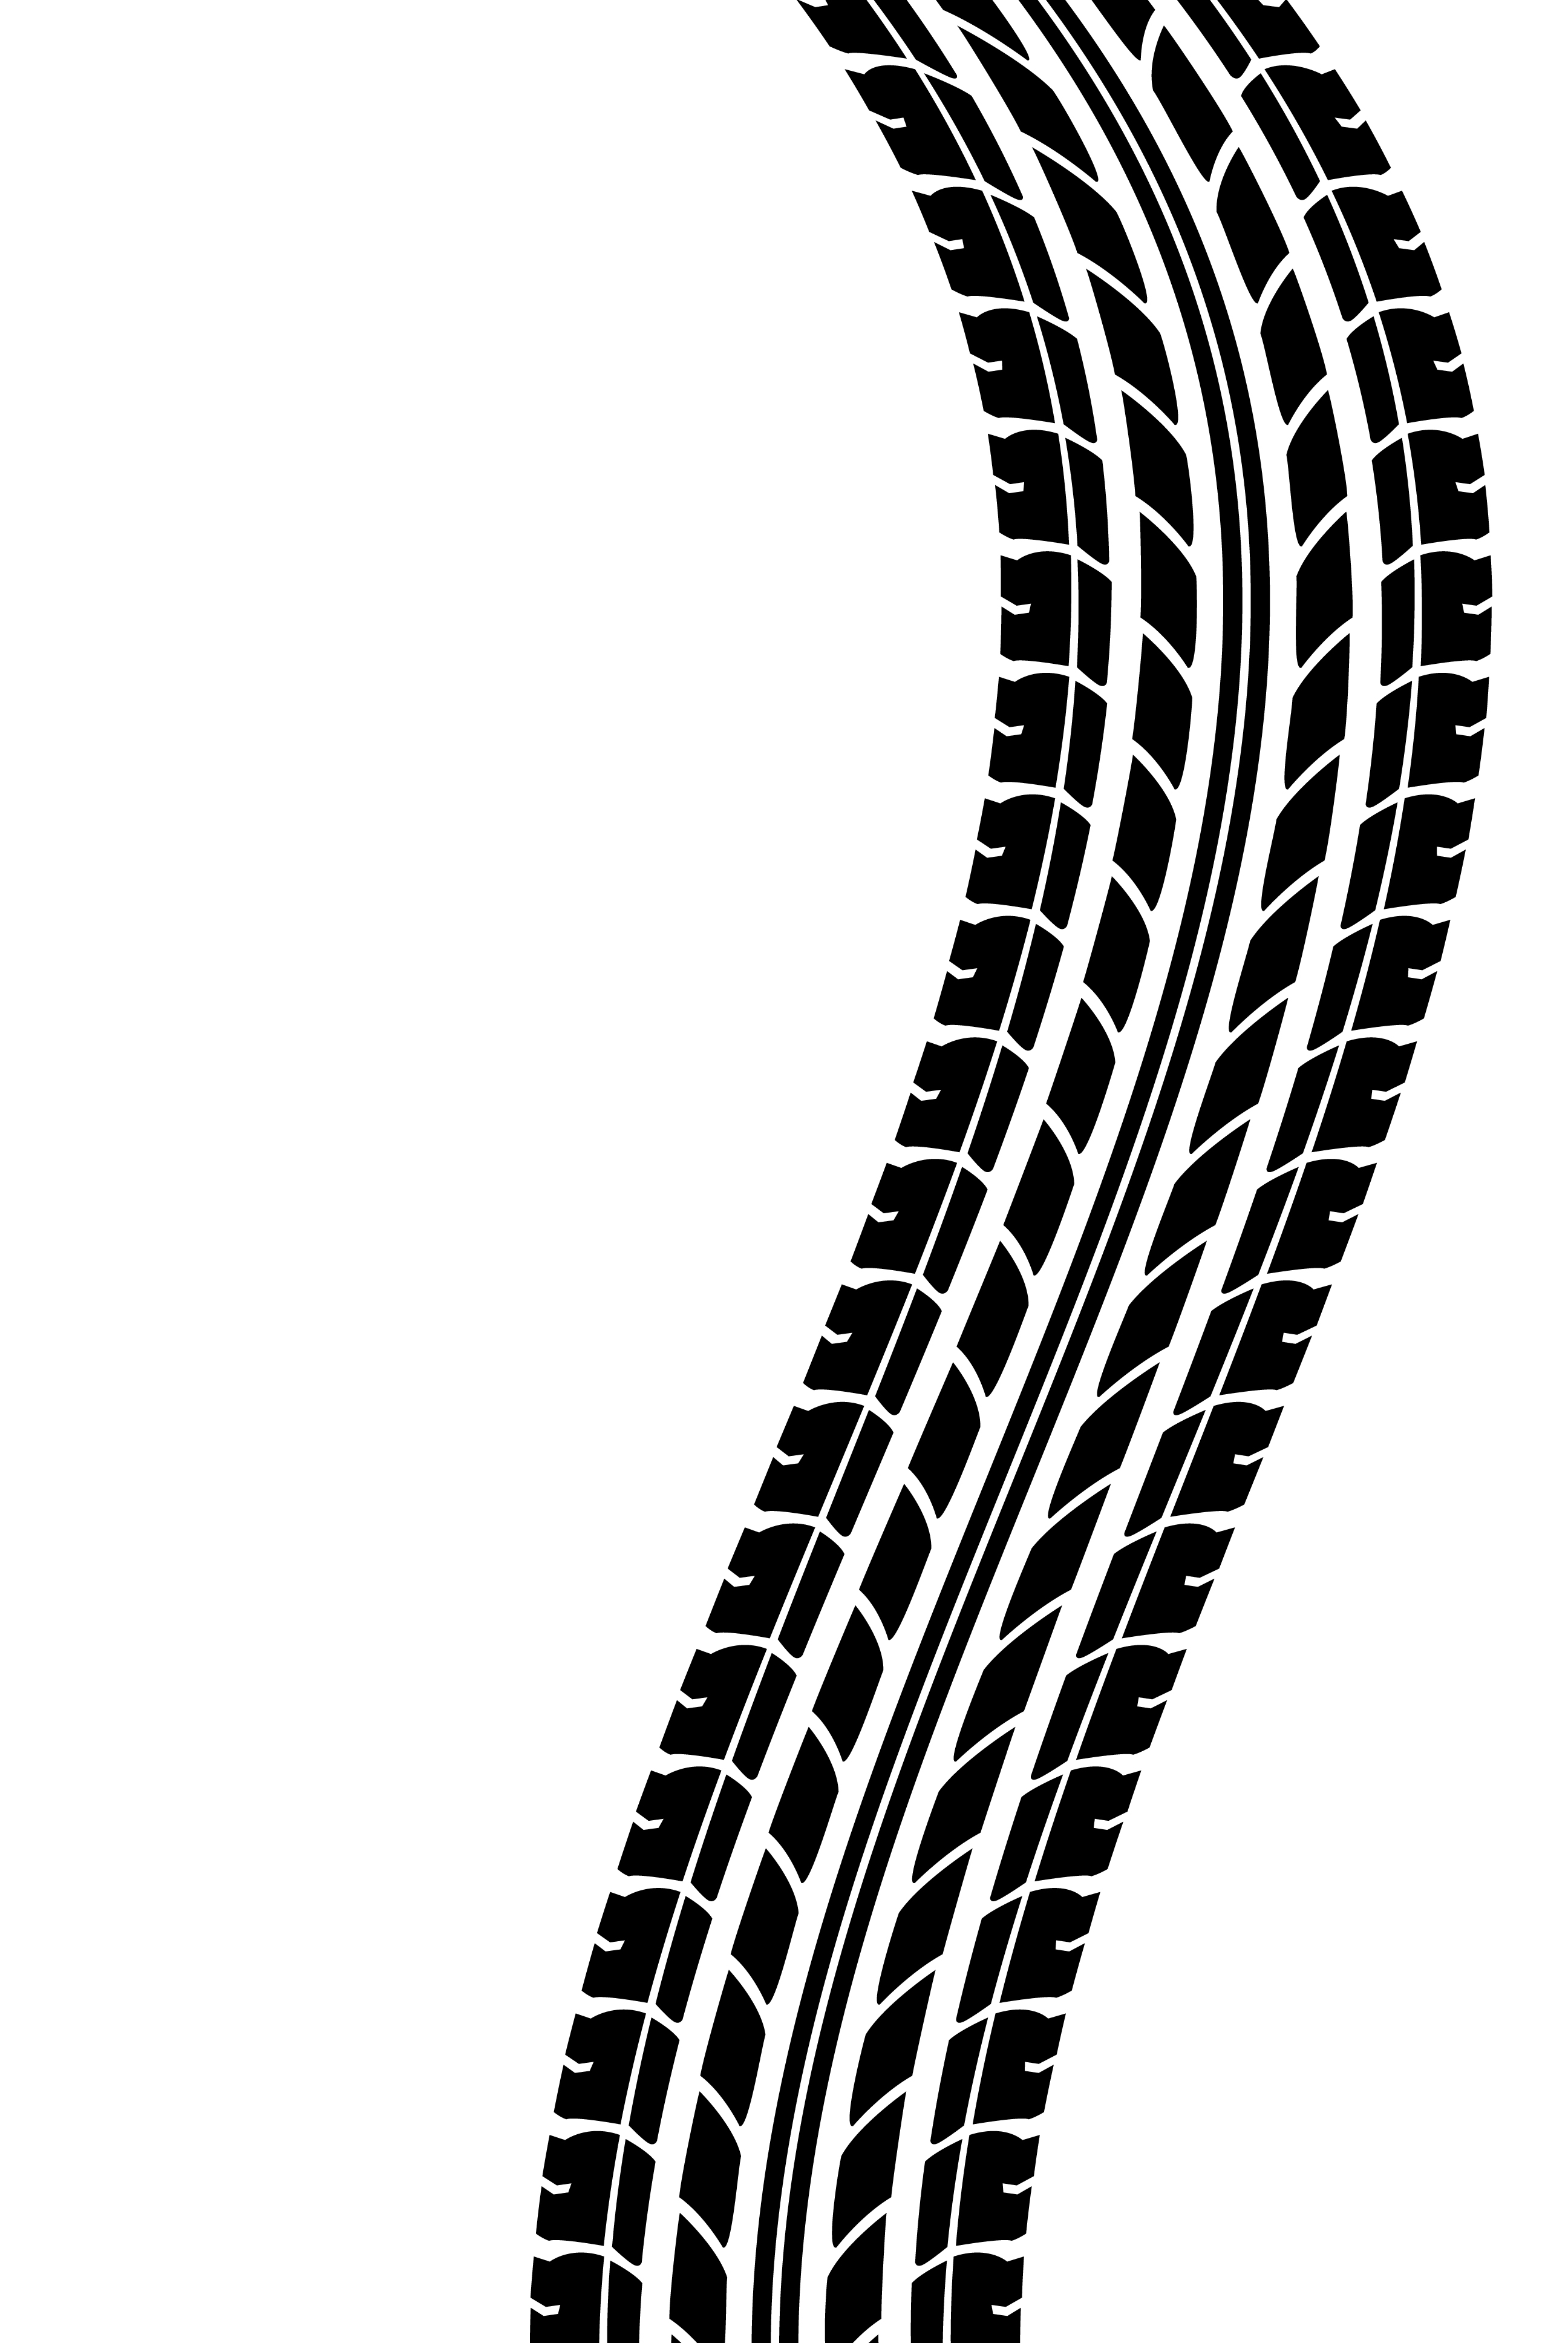 Tire Tracks Clipart Train Track Clipart Clipart Panda Free Clipart Images